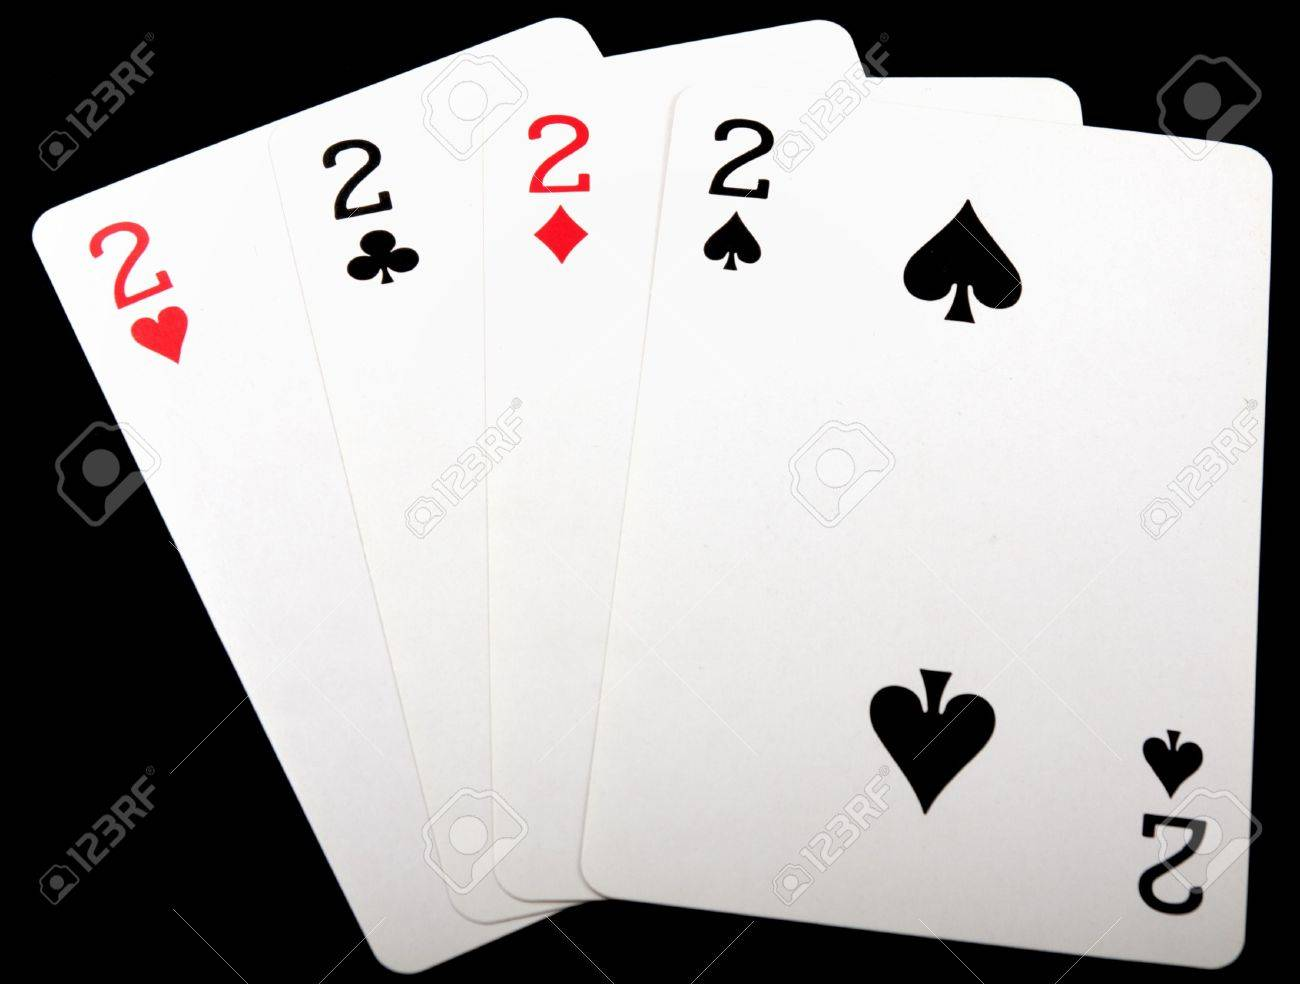 Poker 4 of a kind different types of online gambling